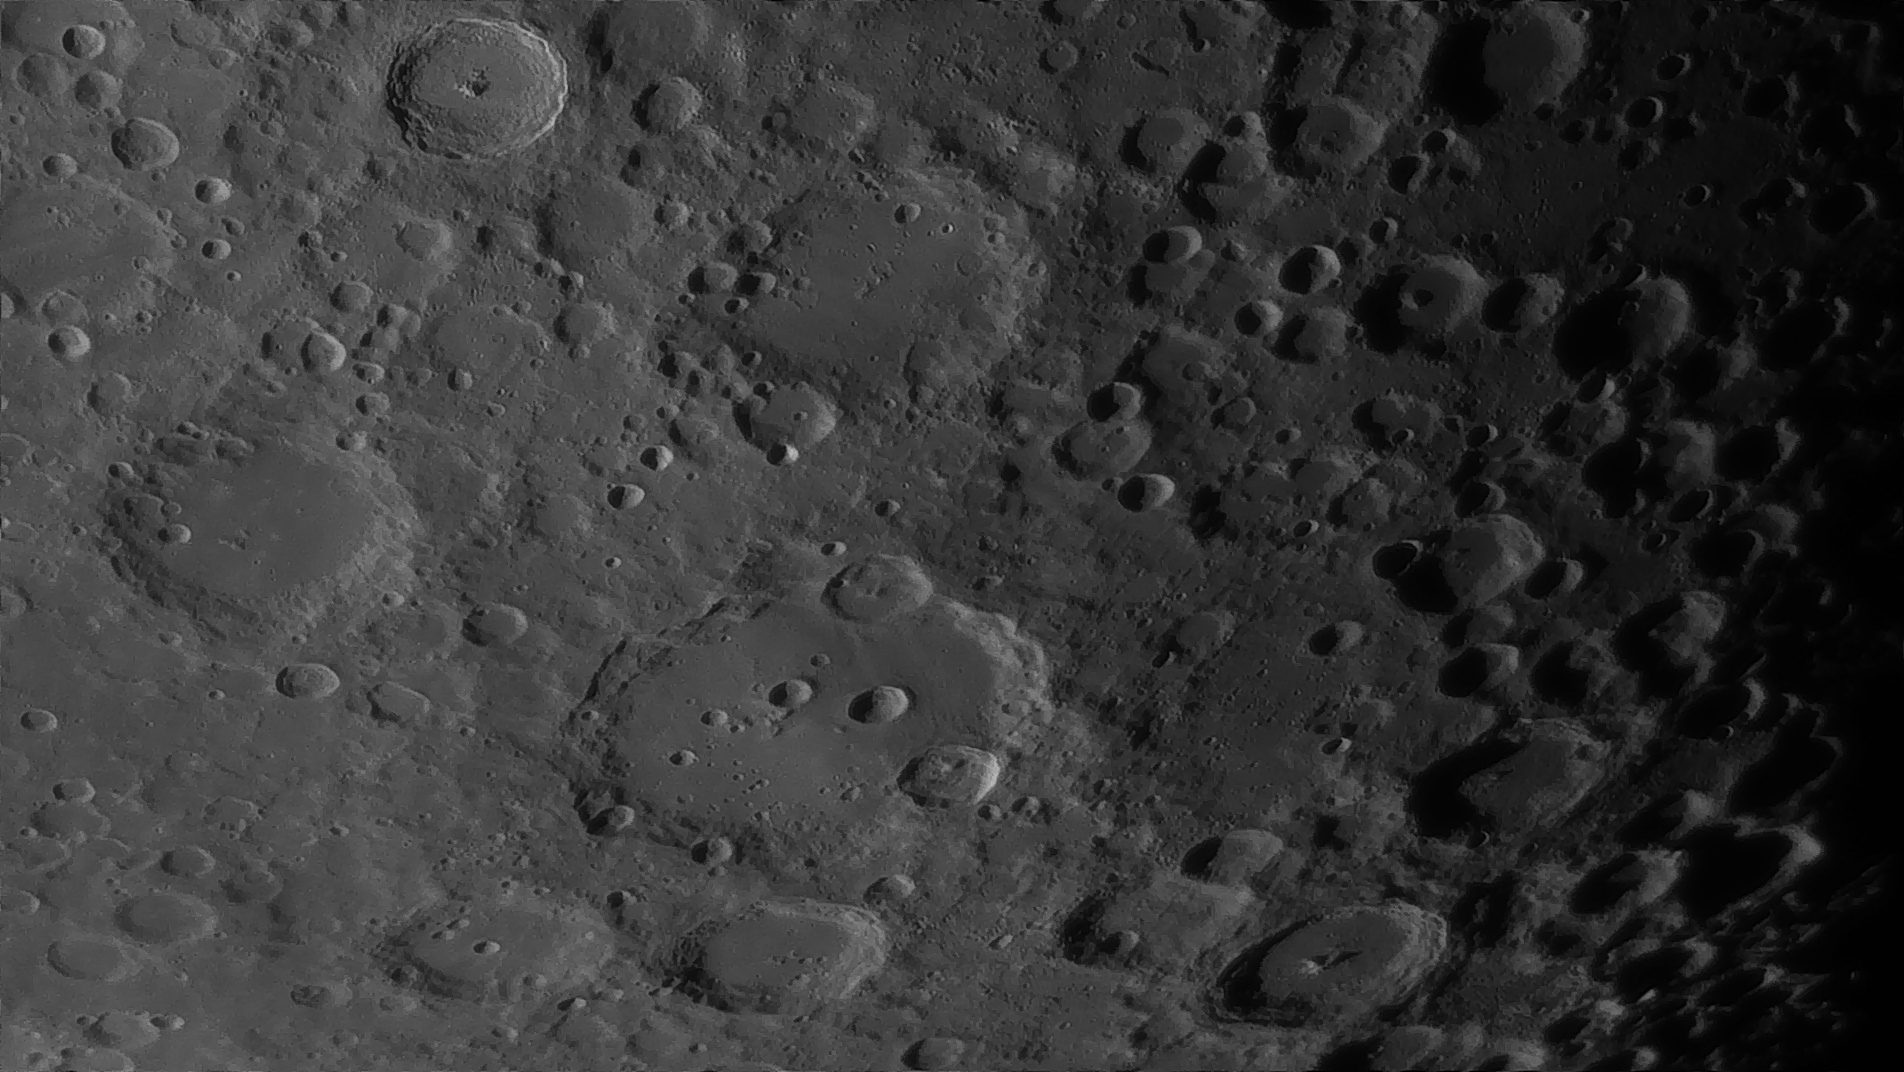 5e51966003197_Moon_054445_160120_ZWOASI290MM_Rouge_23A_AS_P35_lapl6_ap983_AI_Deconvolution_20--.jpg.25f06a0679fc5bb37f23257983fc34bd.jpg